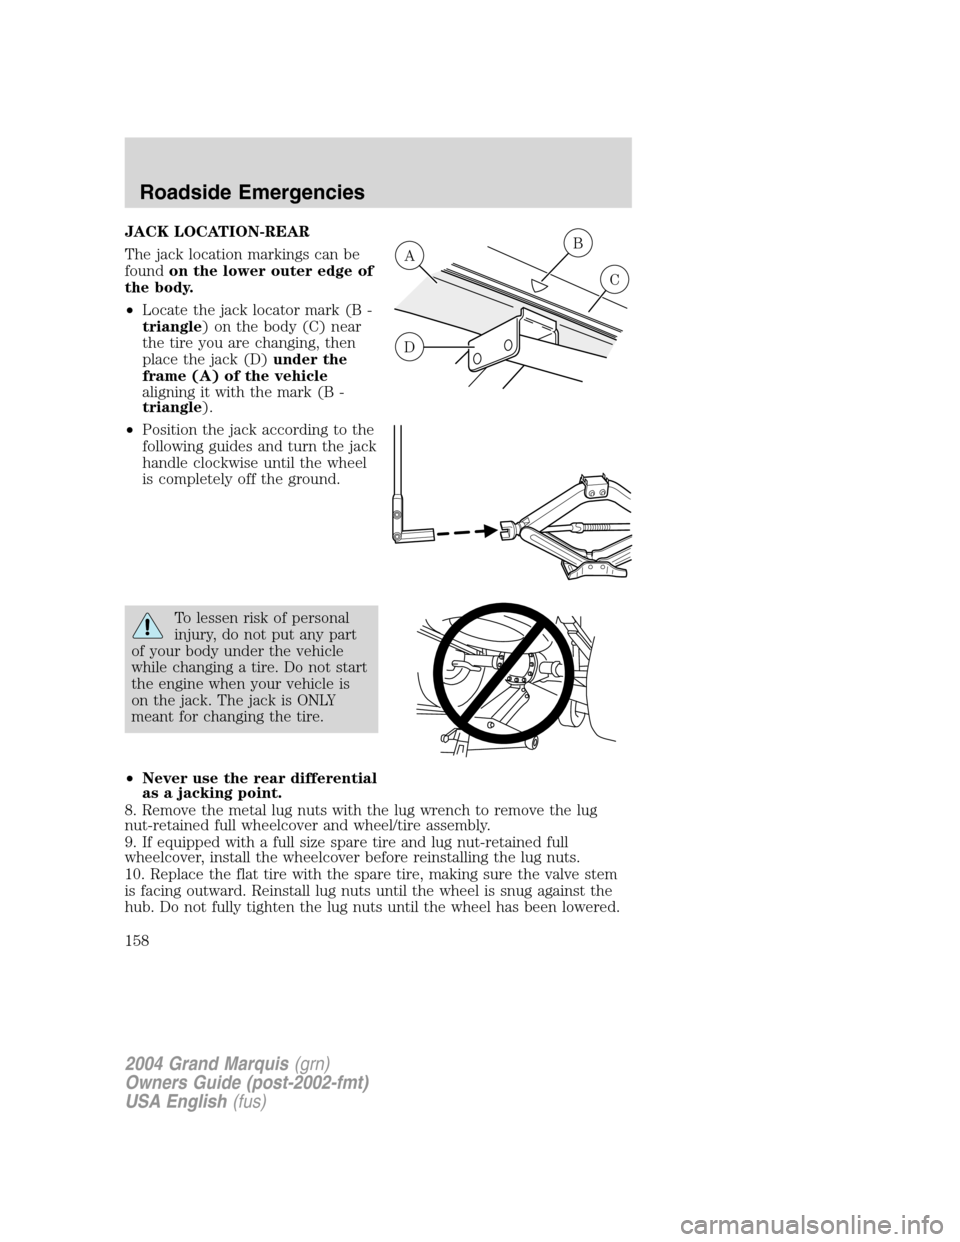 Mercury Grand Marquis 2004  Owners Manuals JACK LOCATION-REAR The jack location markings can be foundon the lower outer edge of the body. •Locate the jack locator mark (B - triangle) on the body (C) near the tire you are changing, then place